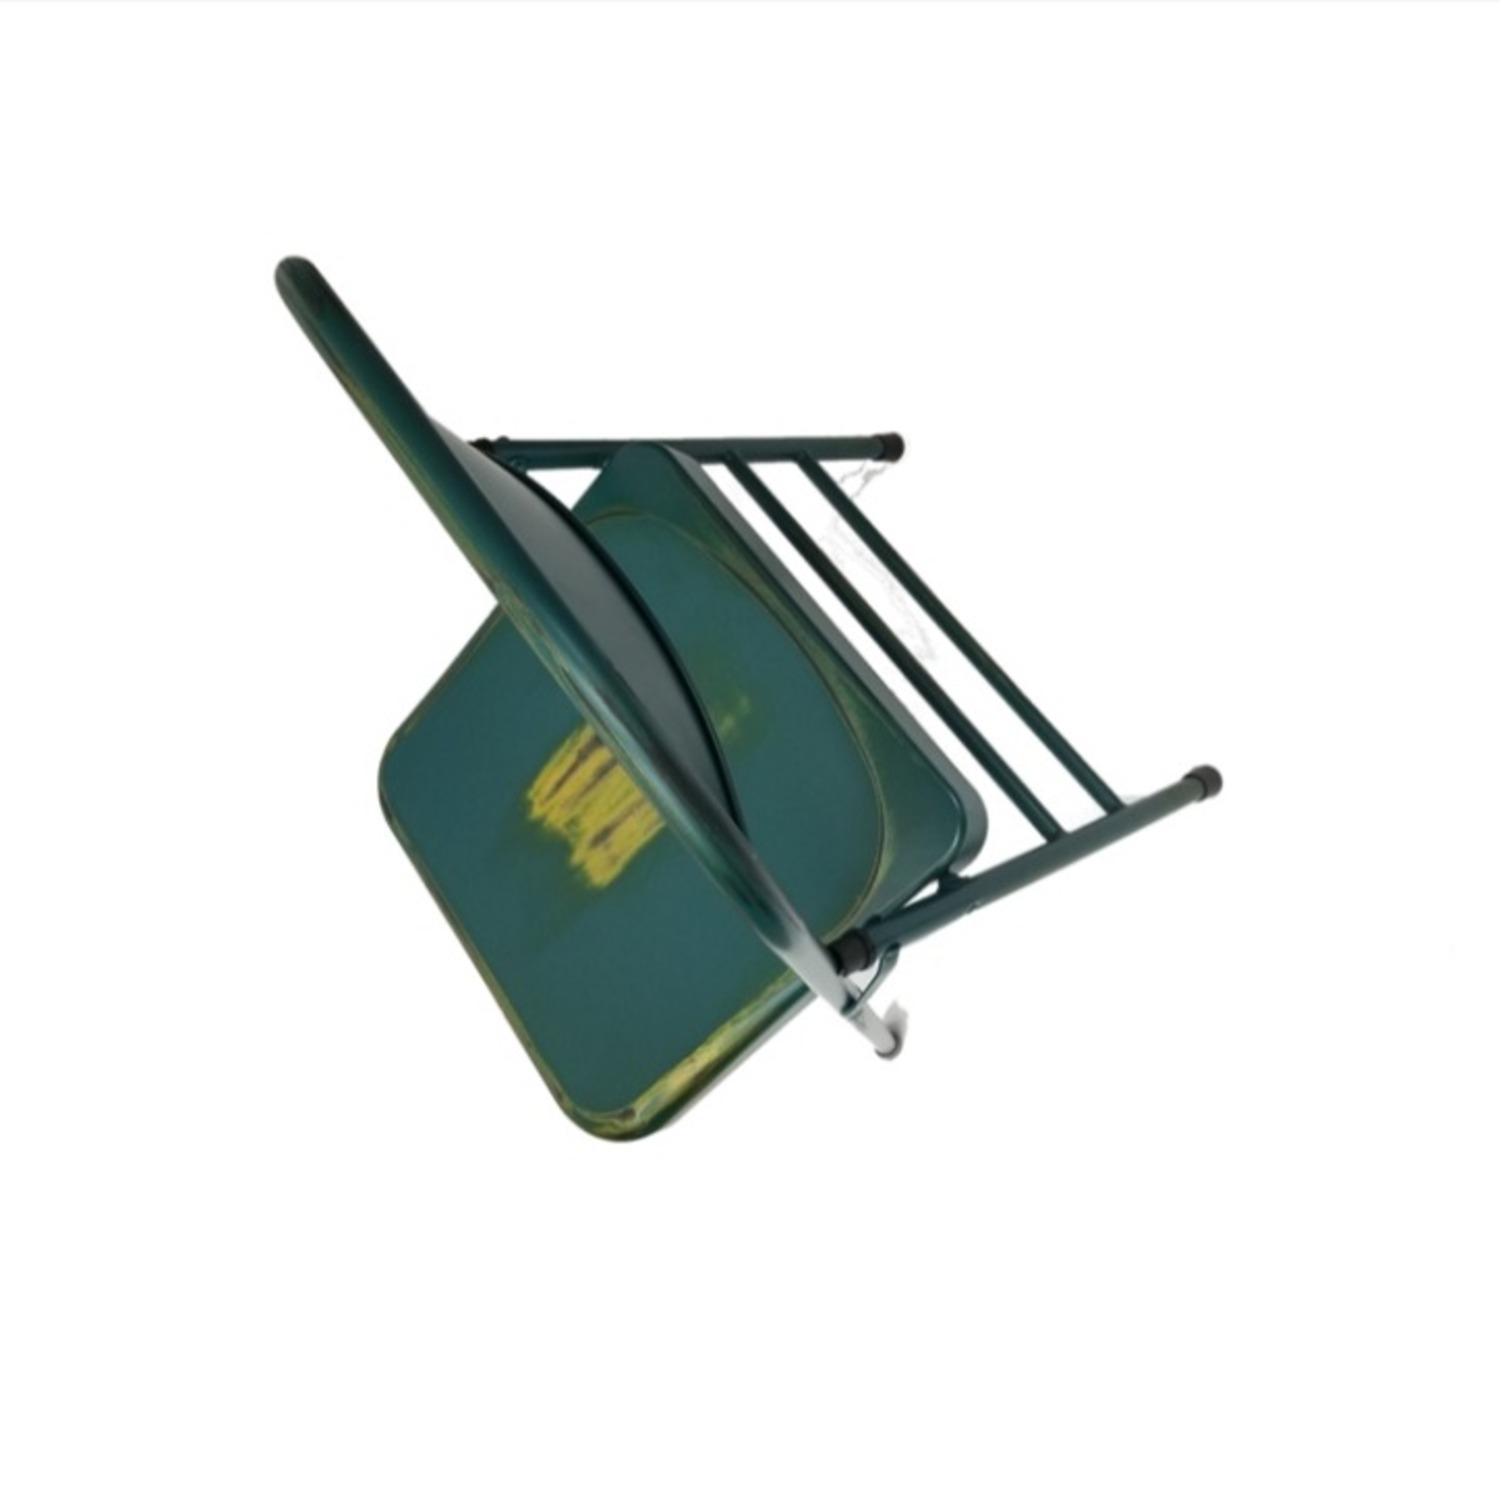 Folding Chair In Turquoise Powder Coated Finish - image-5